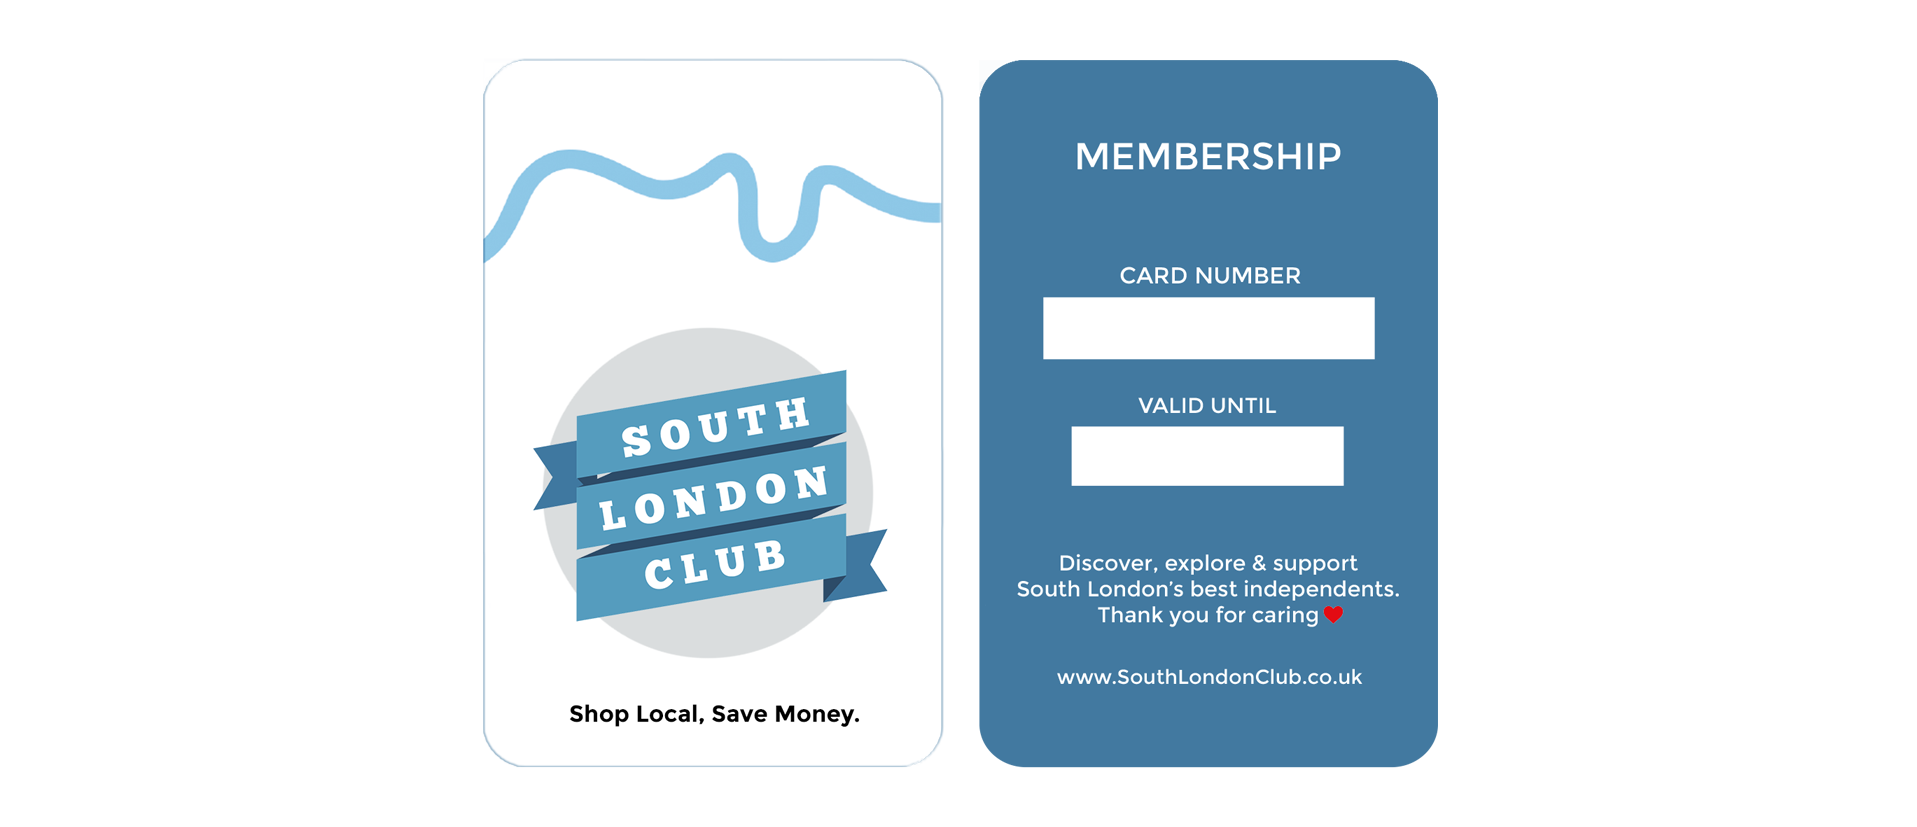 South London Club Card Shop Local